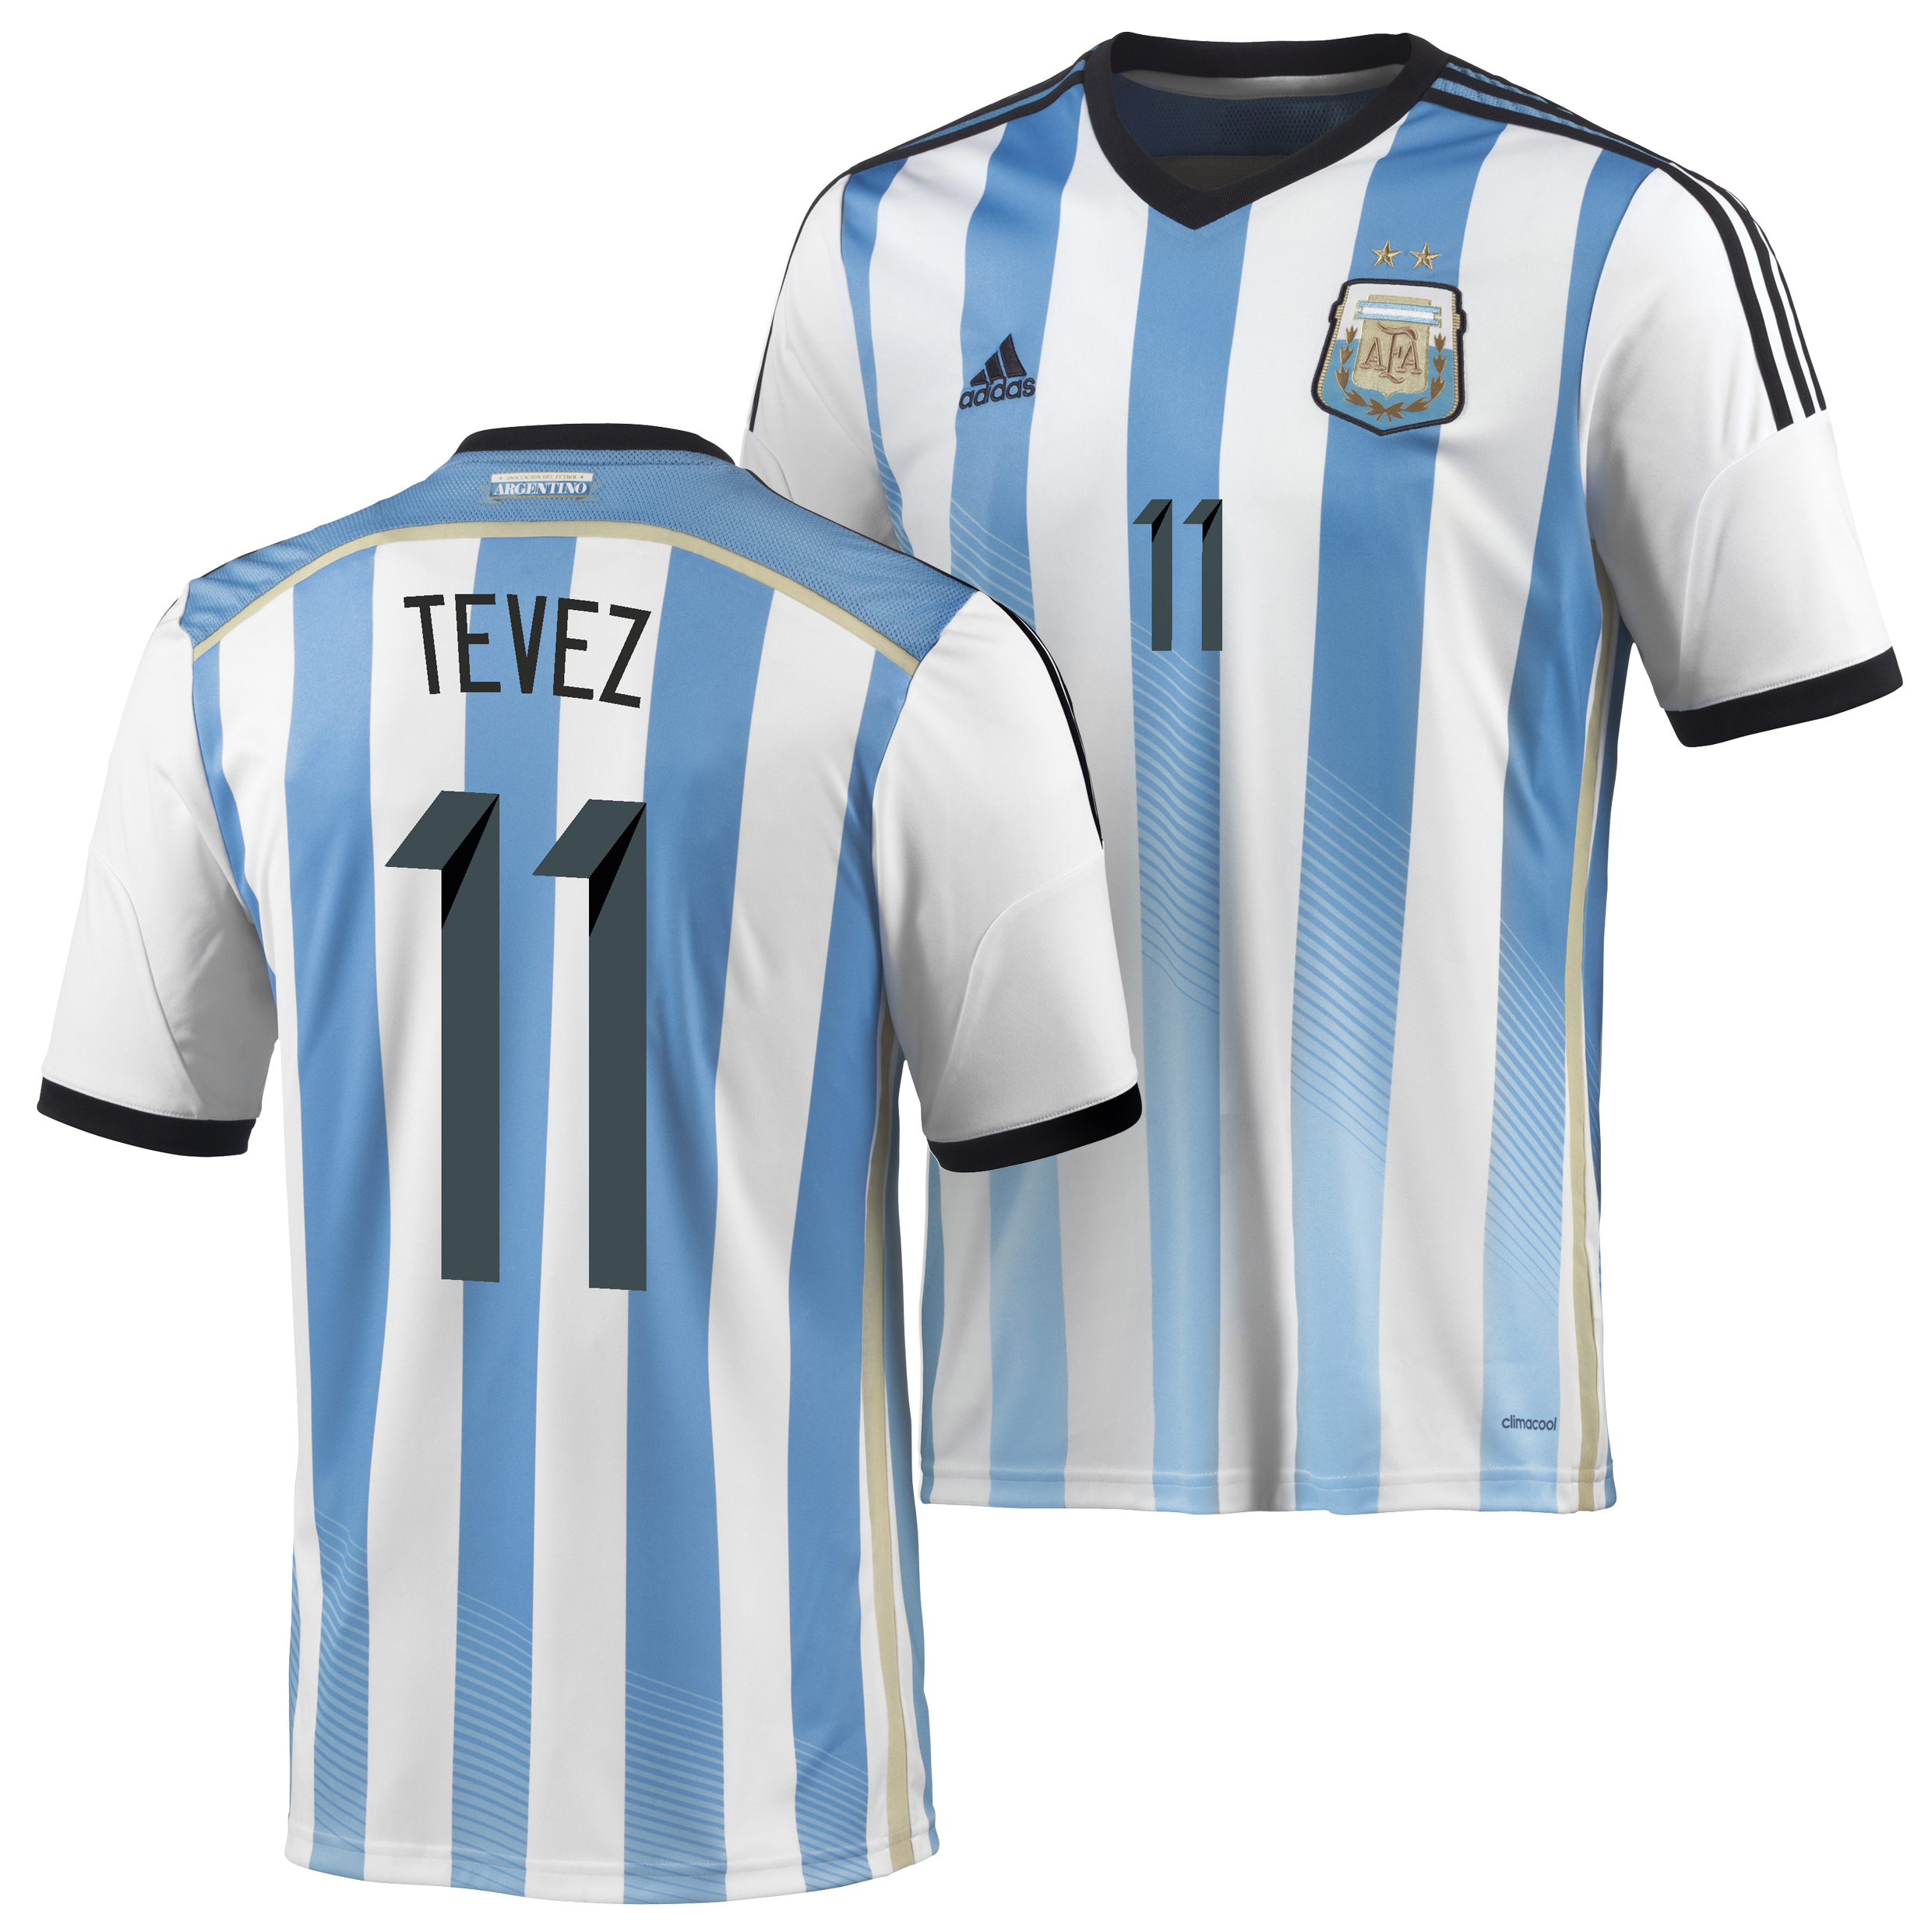 Argentina Home Shirt 2013/15 with Tevez 11 printing